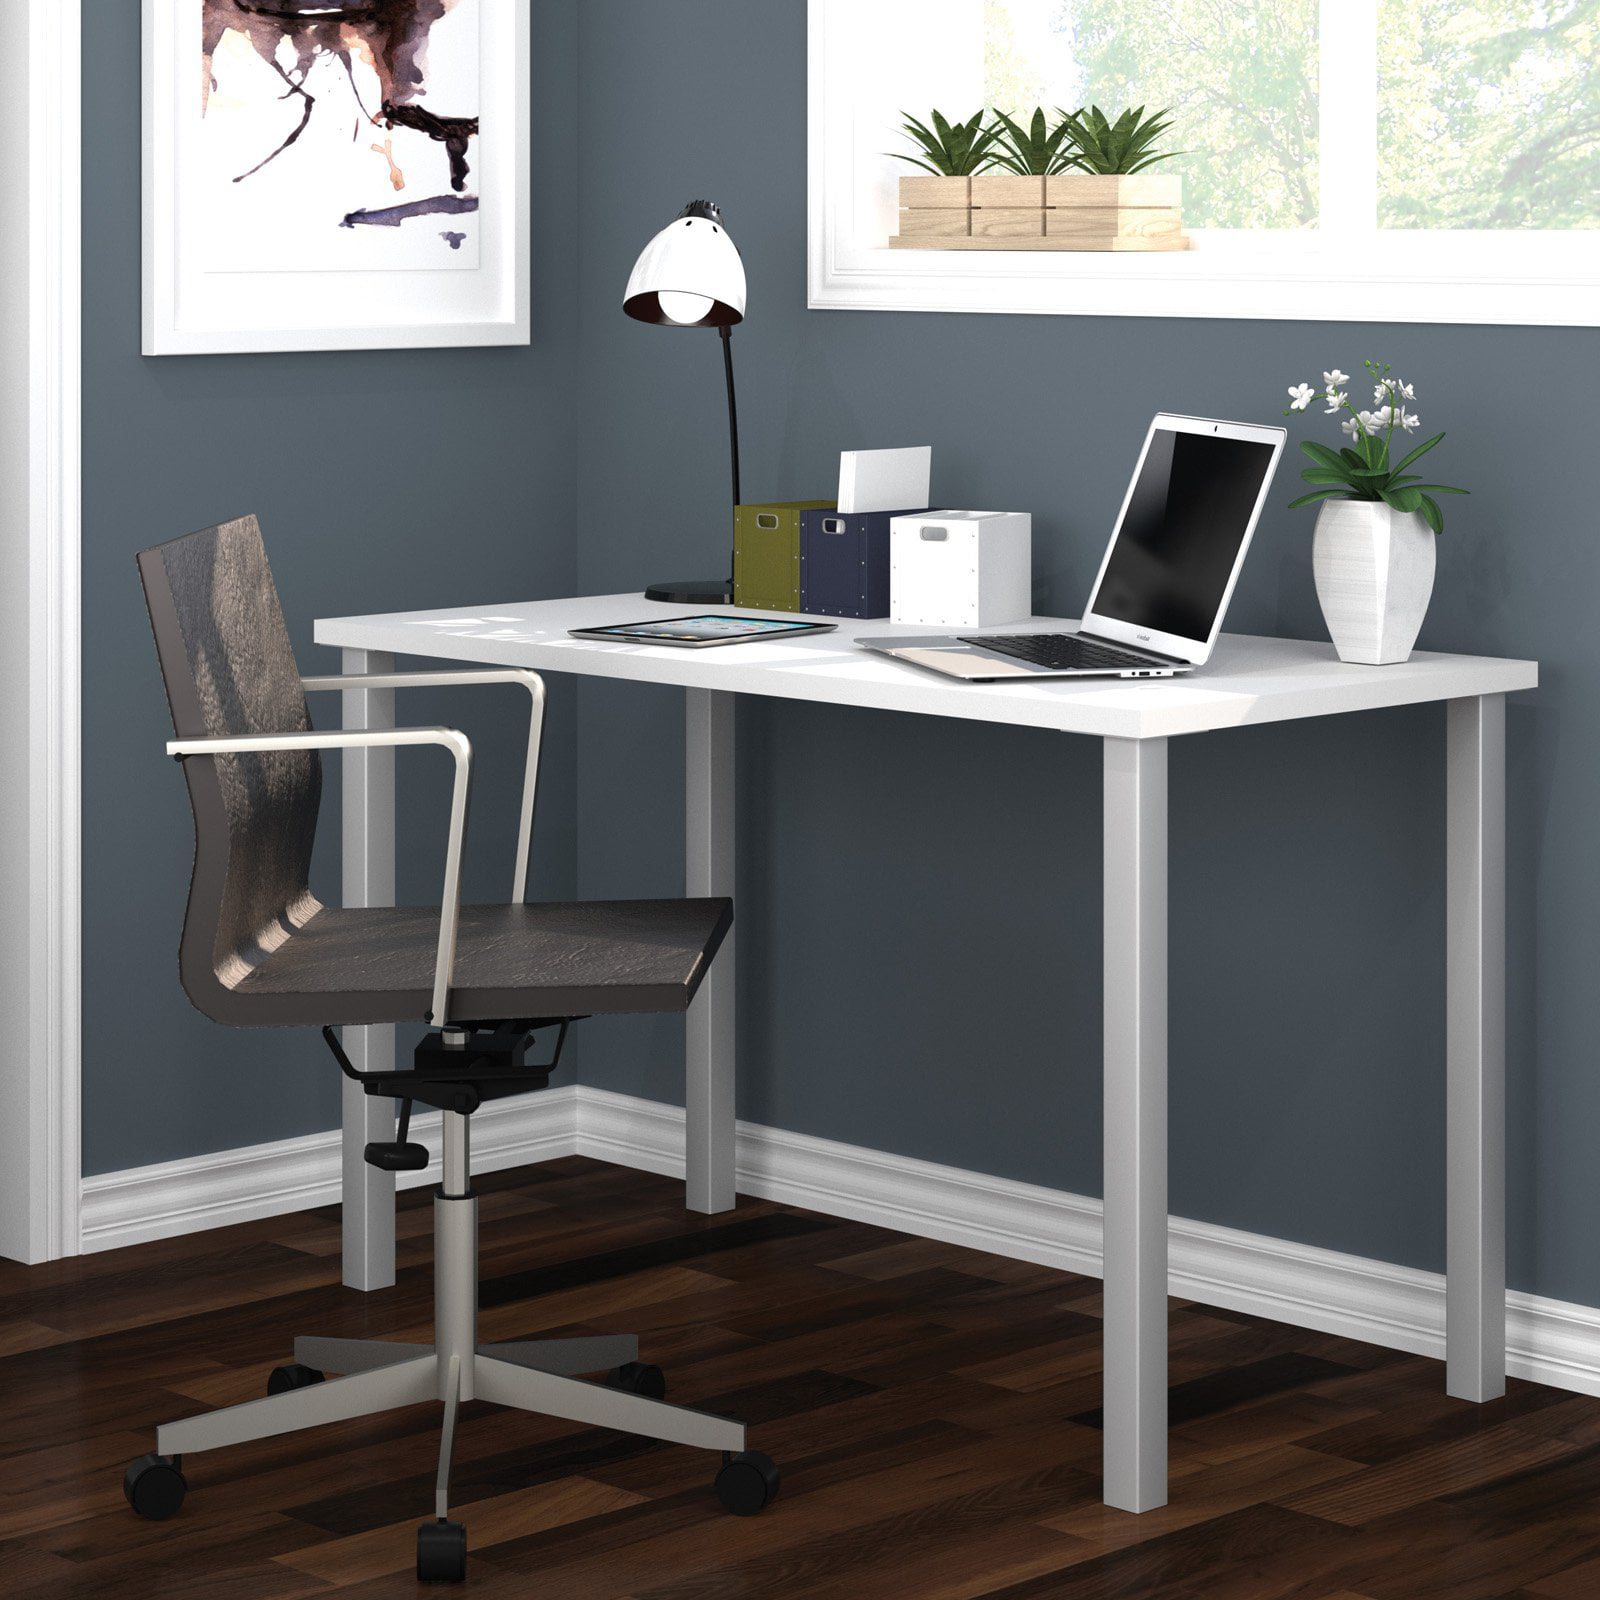 """Bestar 24"""" x 48"""" Table with square metal legs in White by Bestar"""